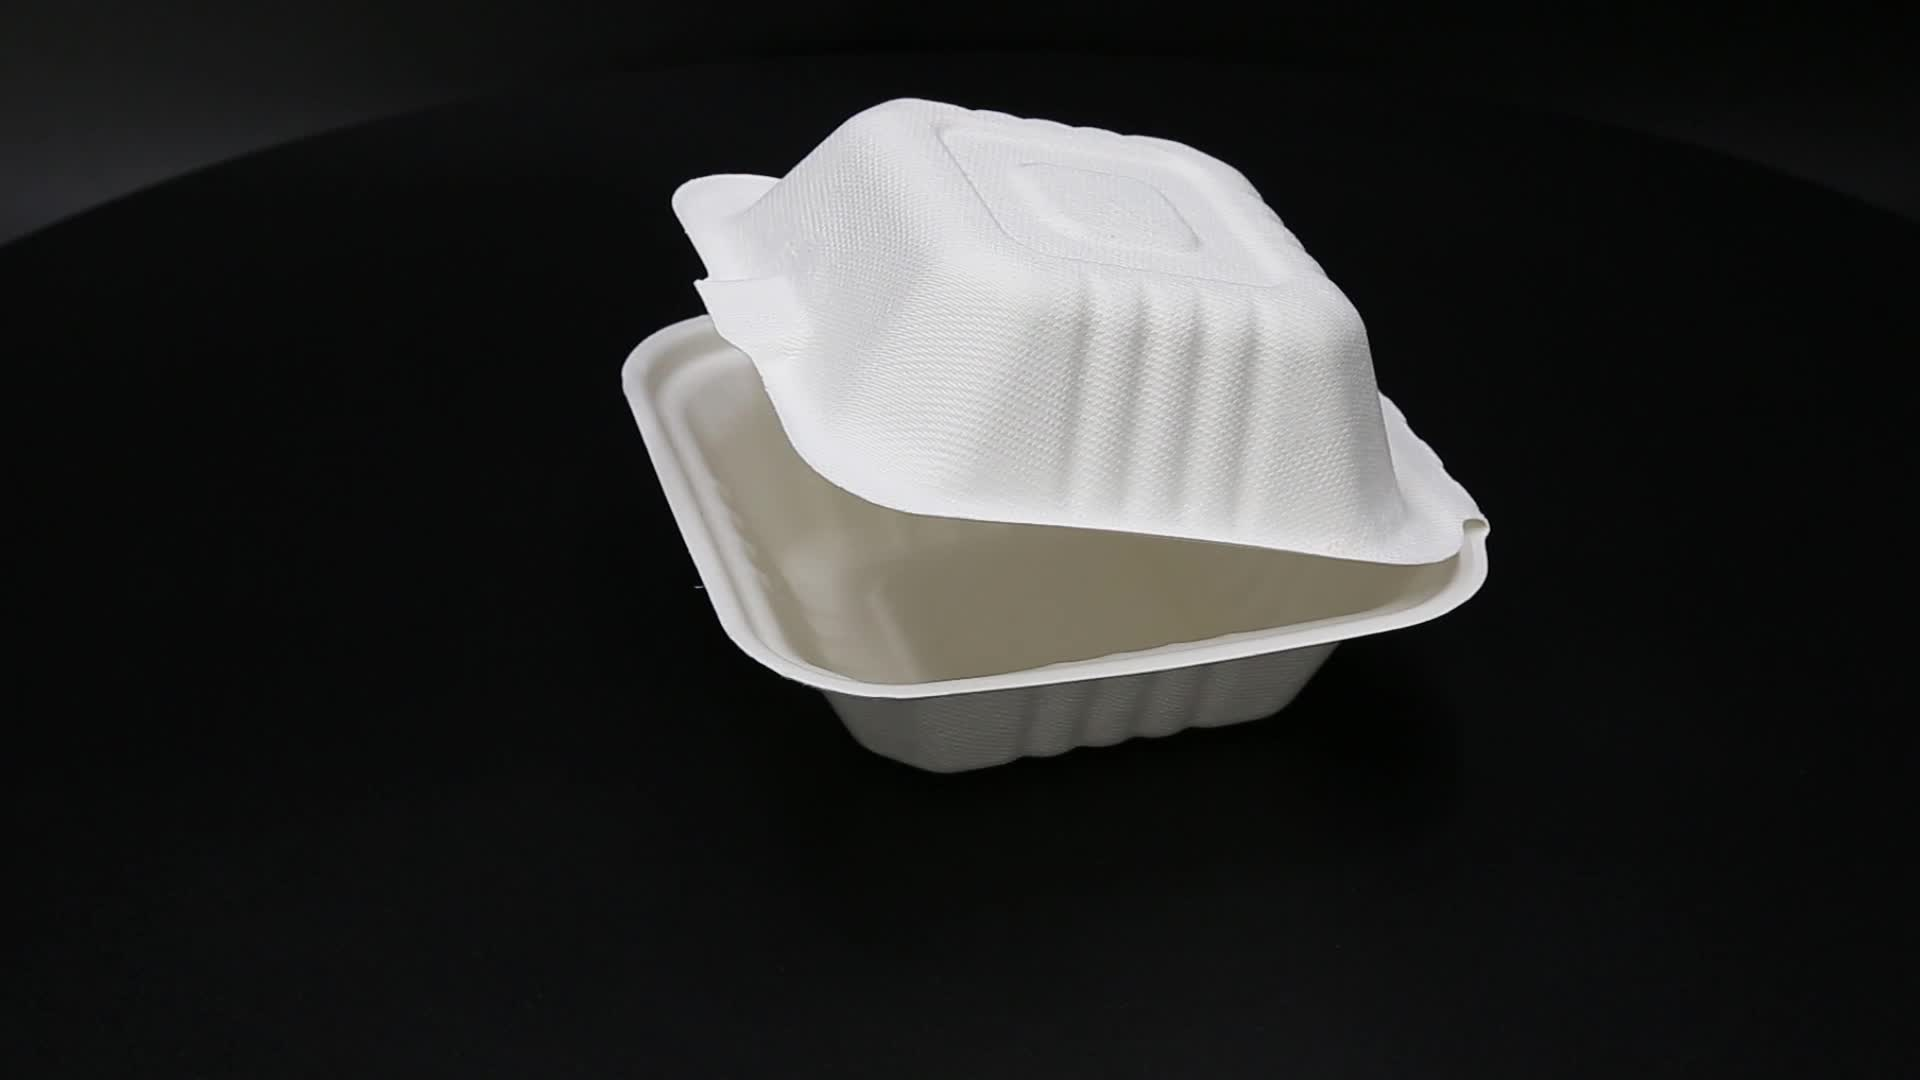 Ecofriendly paper pulp sugarcane bagasse tableware container plates bowls clamshells